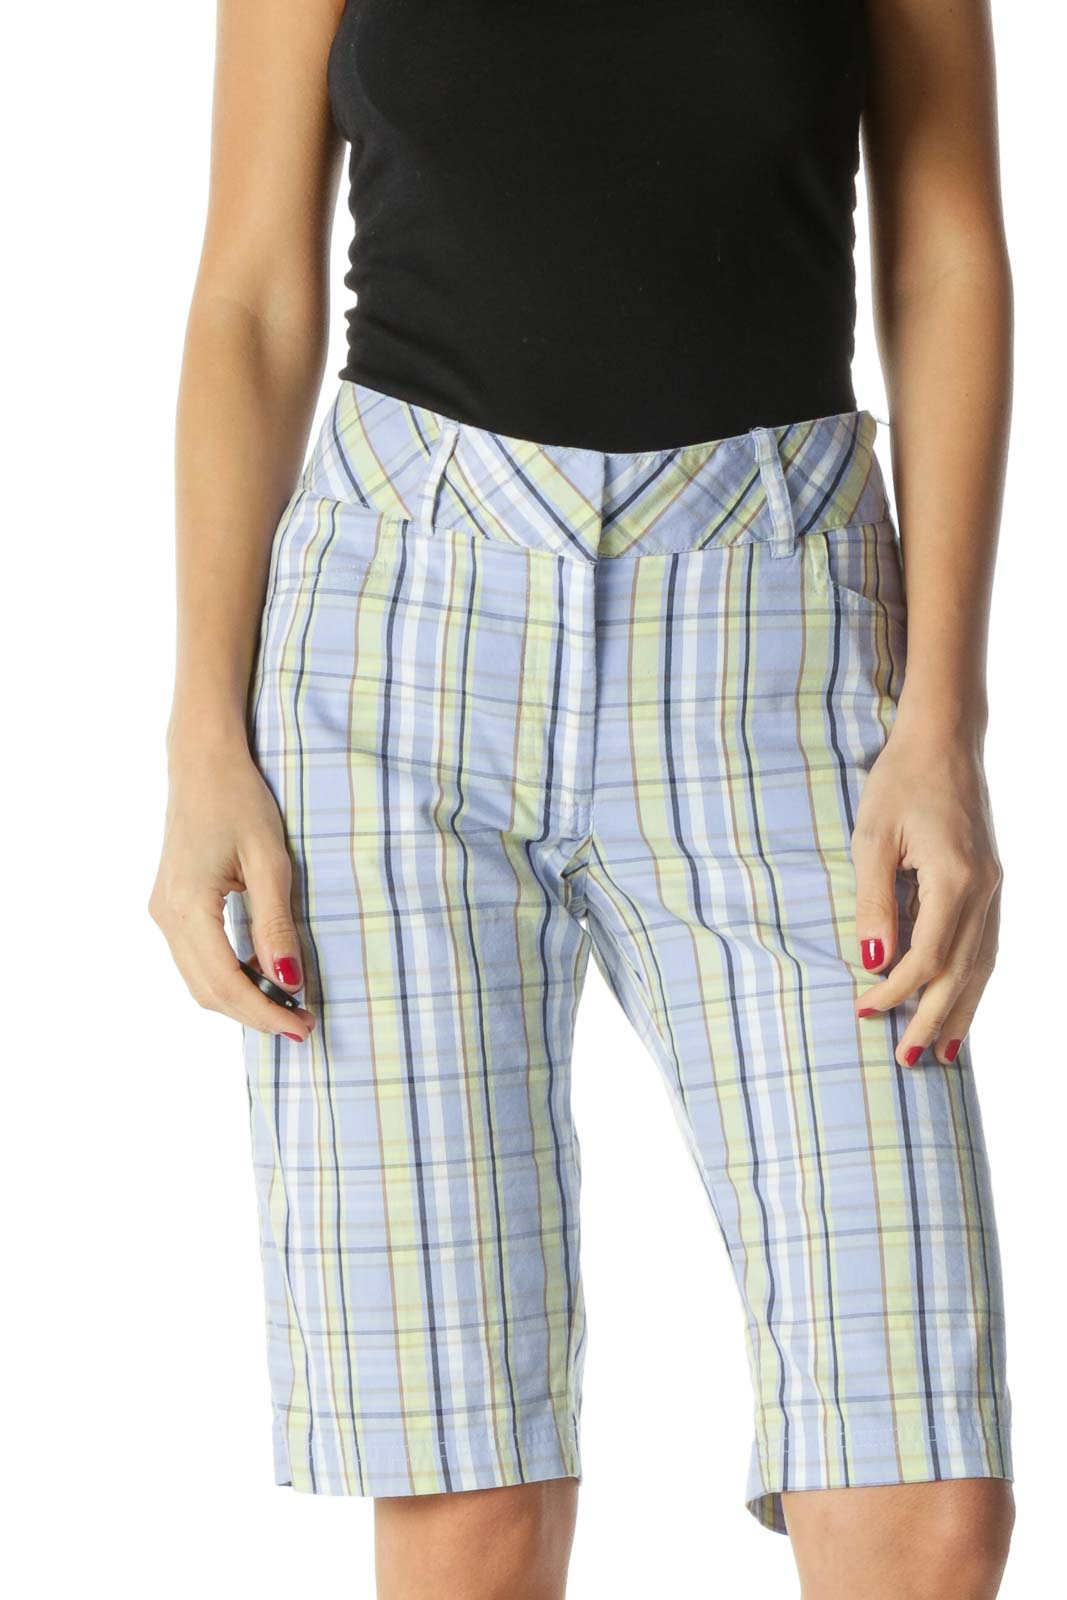 Blue Brown Yellow Plaid Golf Shorts Front